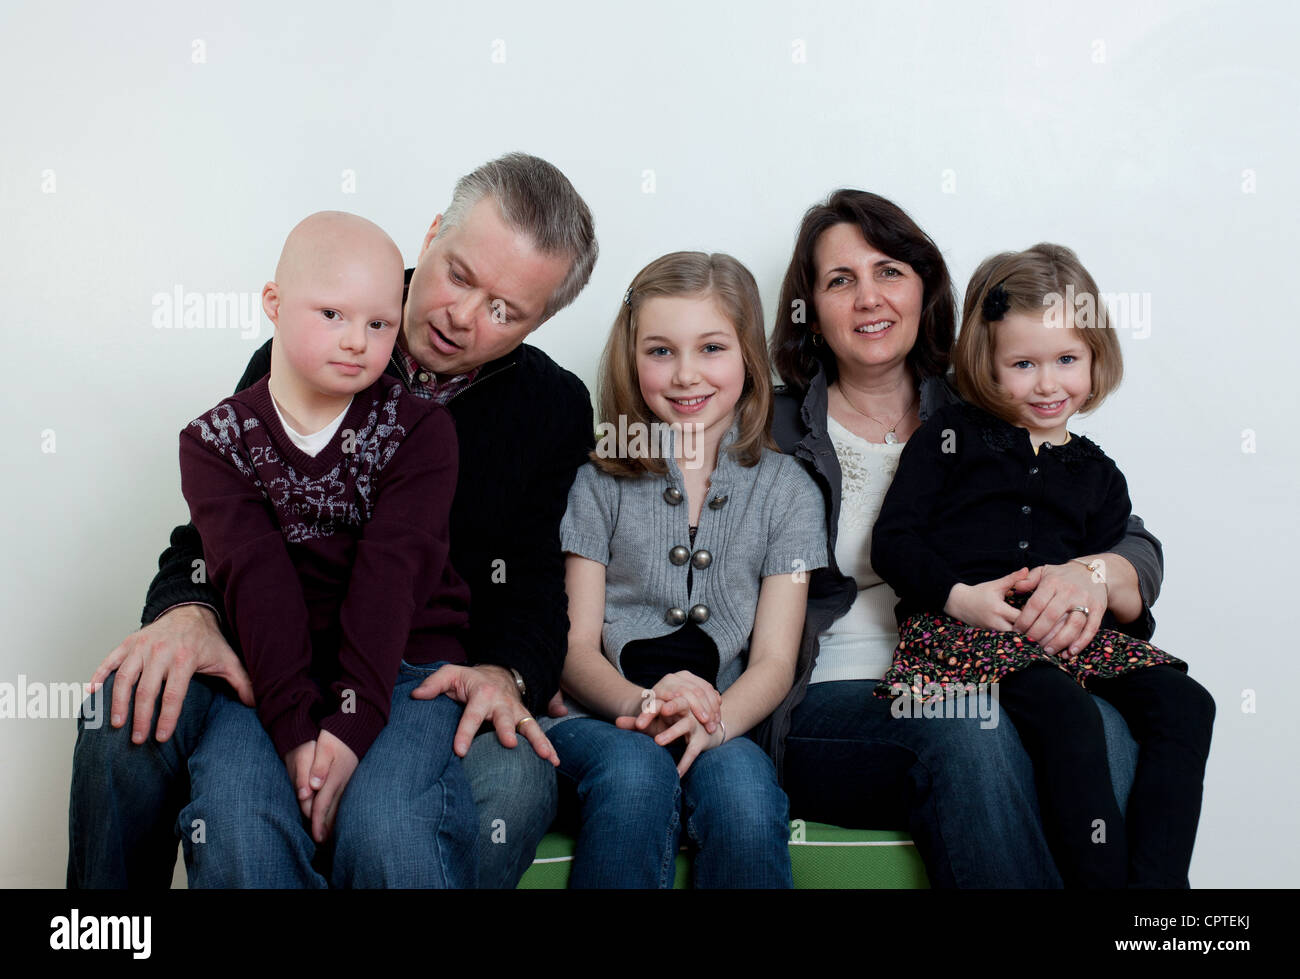 Family portrait with two daughters and son with Down's Syndrome - Stock Image